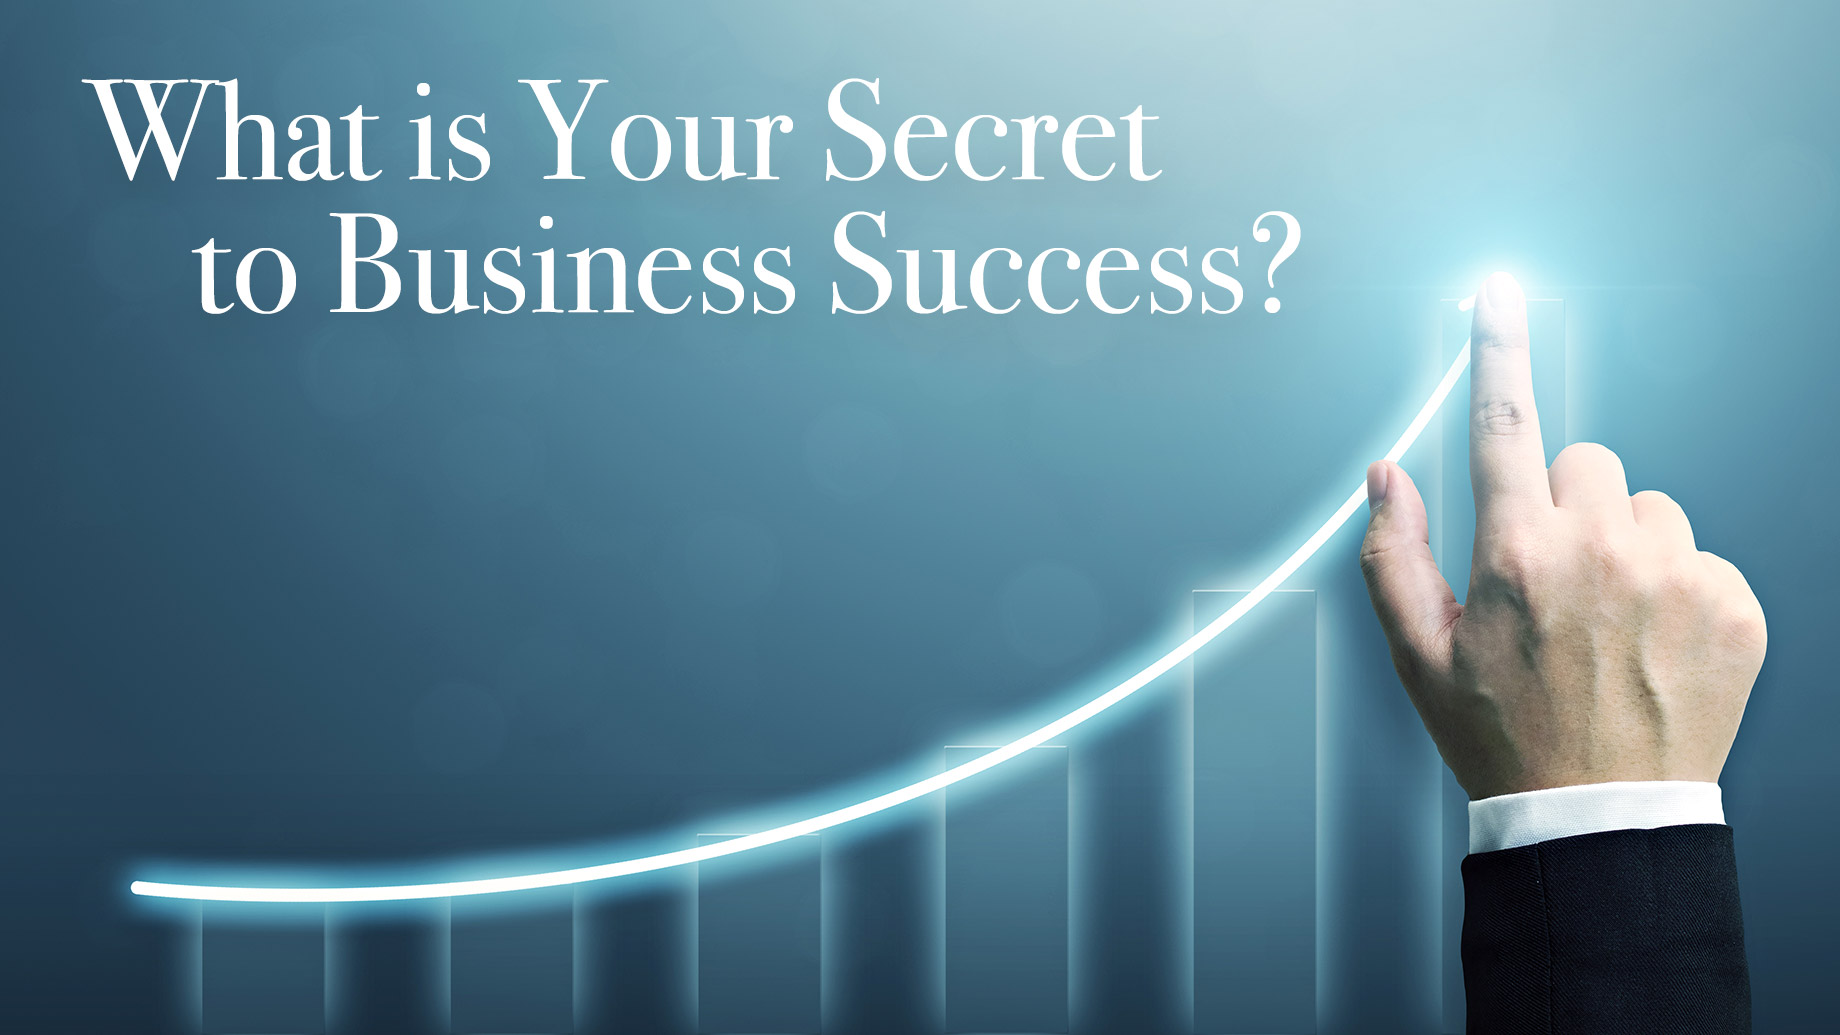 What is Your Secret to Business Success?